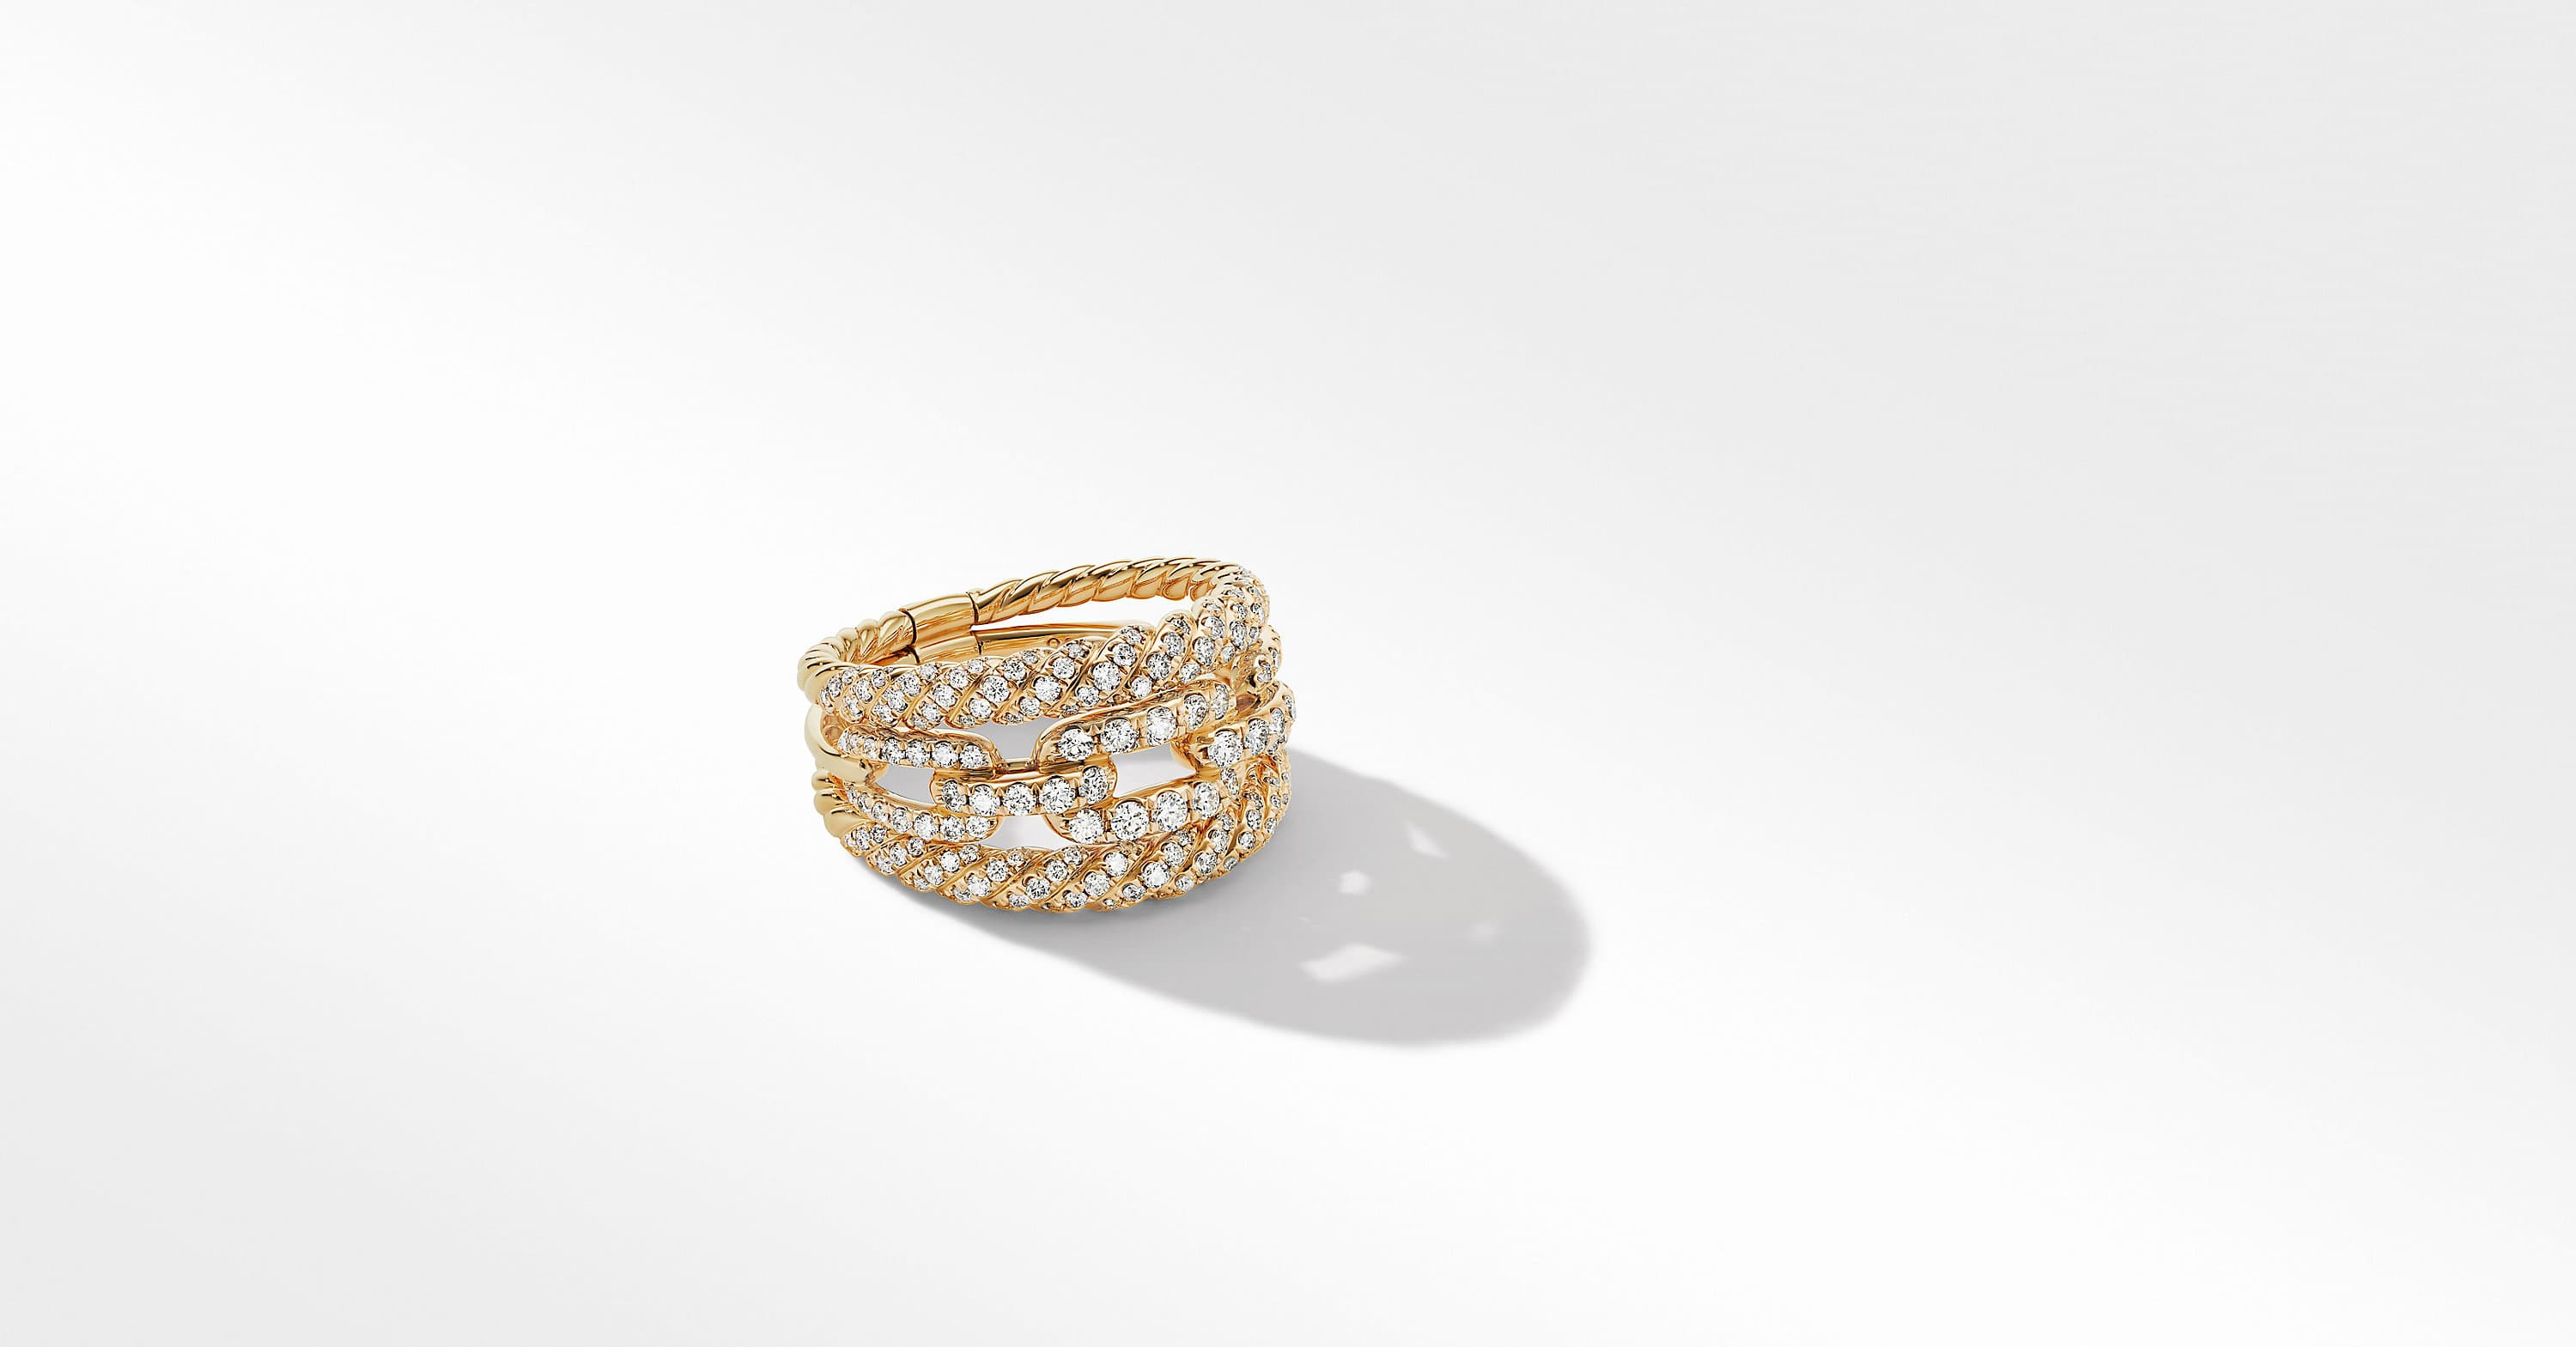 Stax Three-Row Ring in 18K Yellow Gold with Full Pavé, 14mm